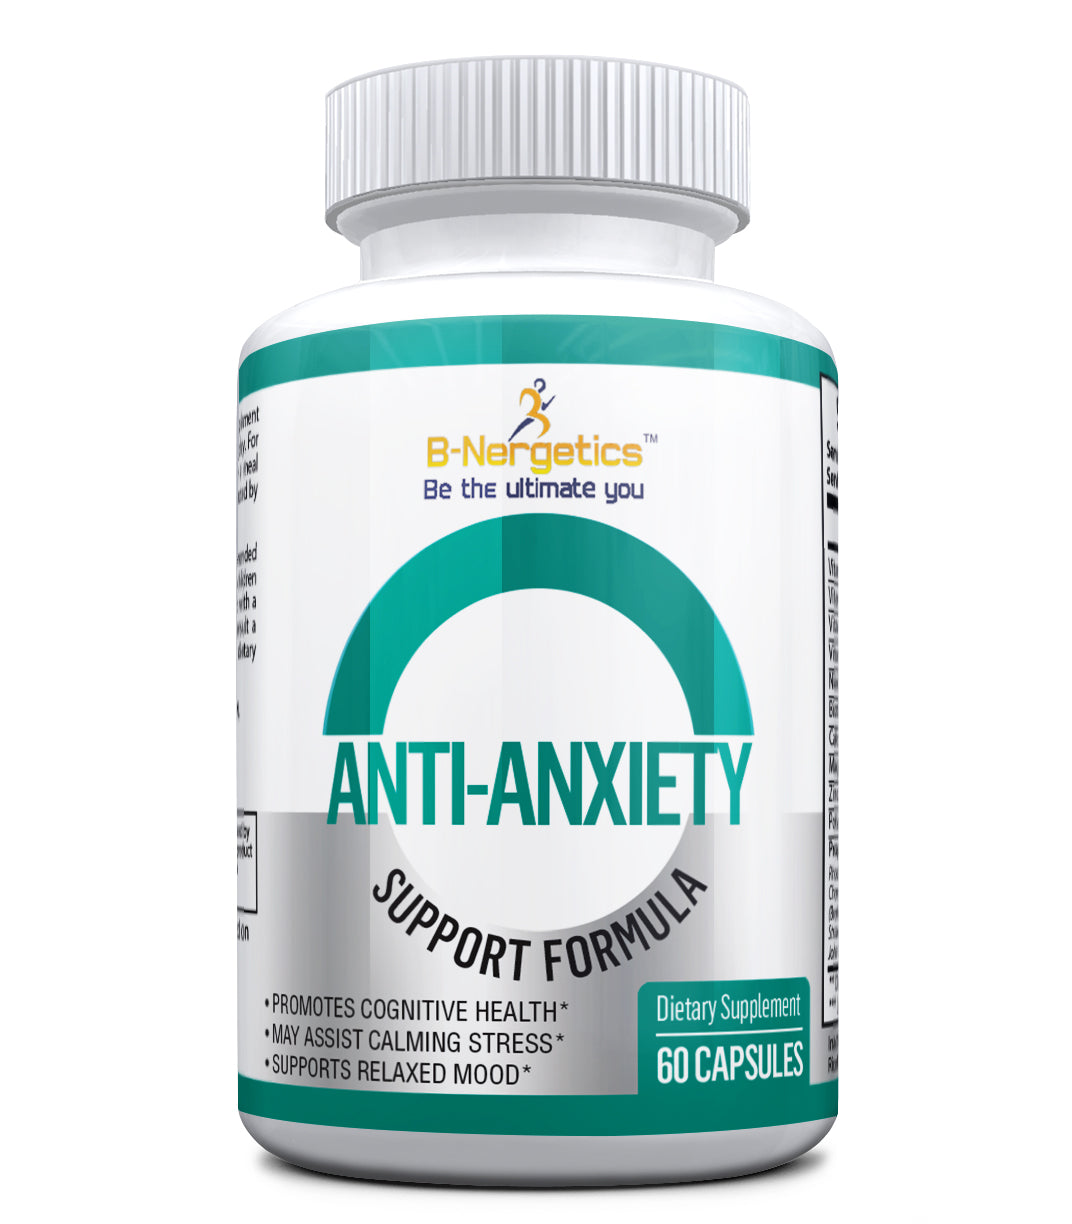 B-Nergetics Anti-Anxiety Formula - b-nergetics.com, stress relief, bottle 60 caspules, 1 month supply, all natural.